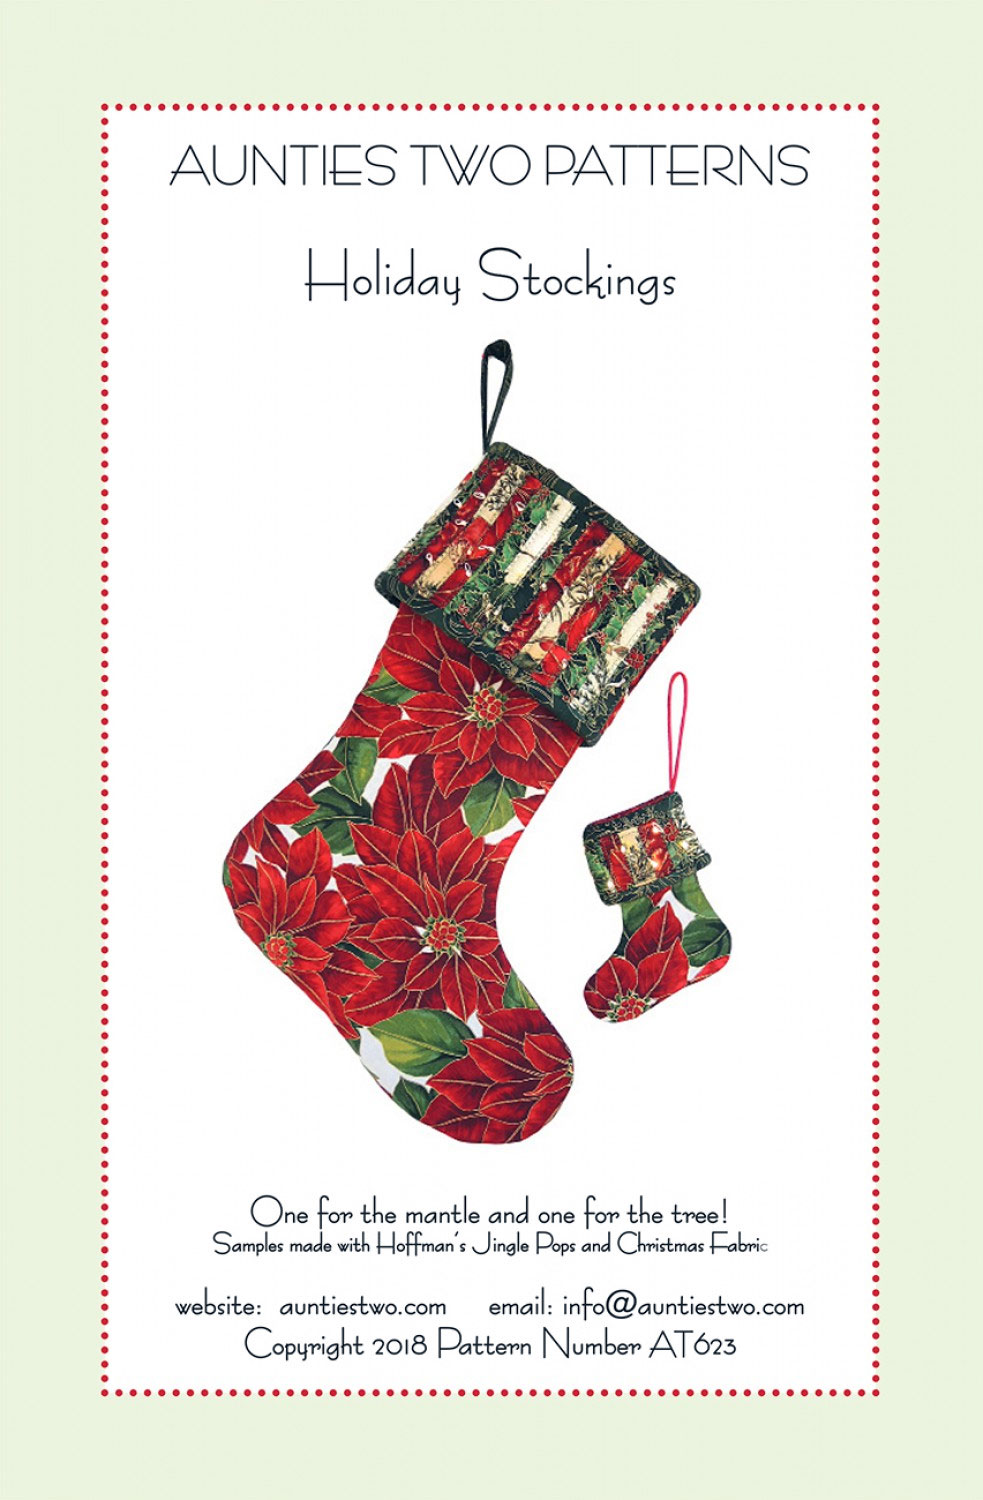 Holiday Stockings sewing pattern from Aunties Two